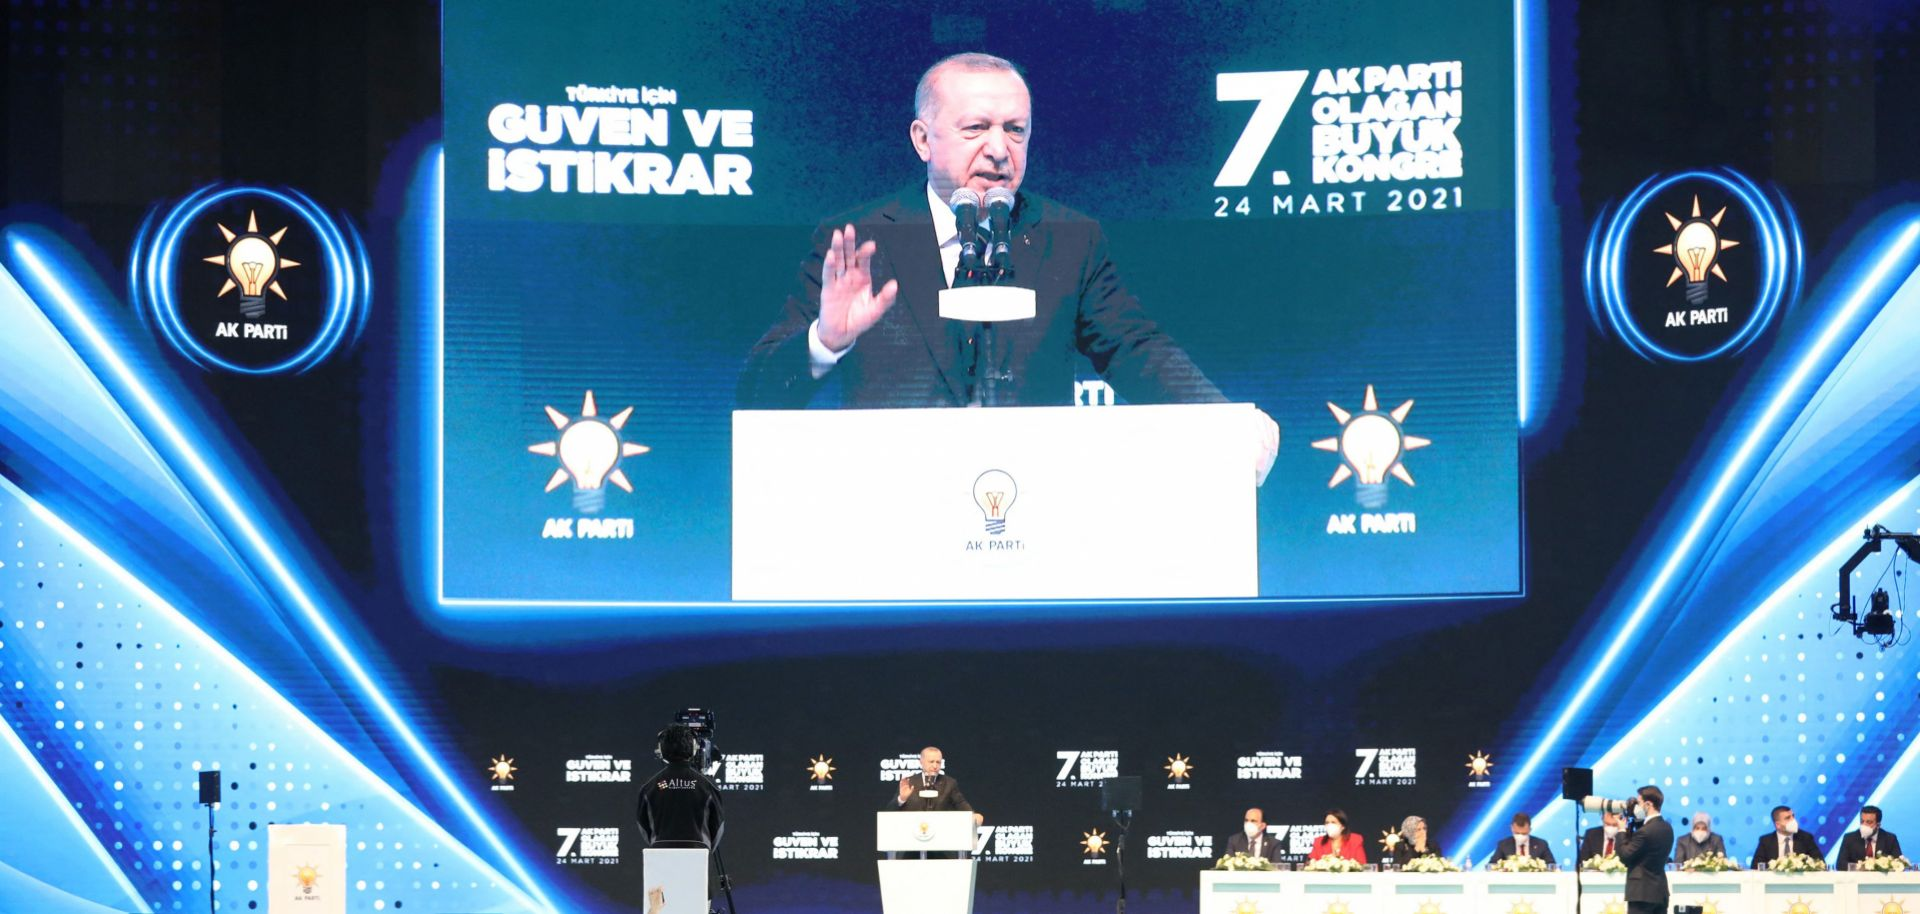 Turkish President Recep Tayyip Erdogan addresses supporters of his ruling Justice and Development Party during a political rally in Ankara on March 24, 2021.